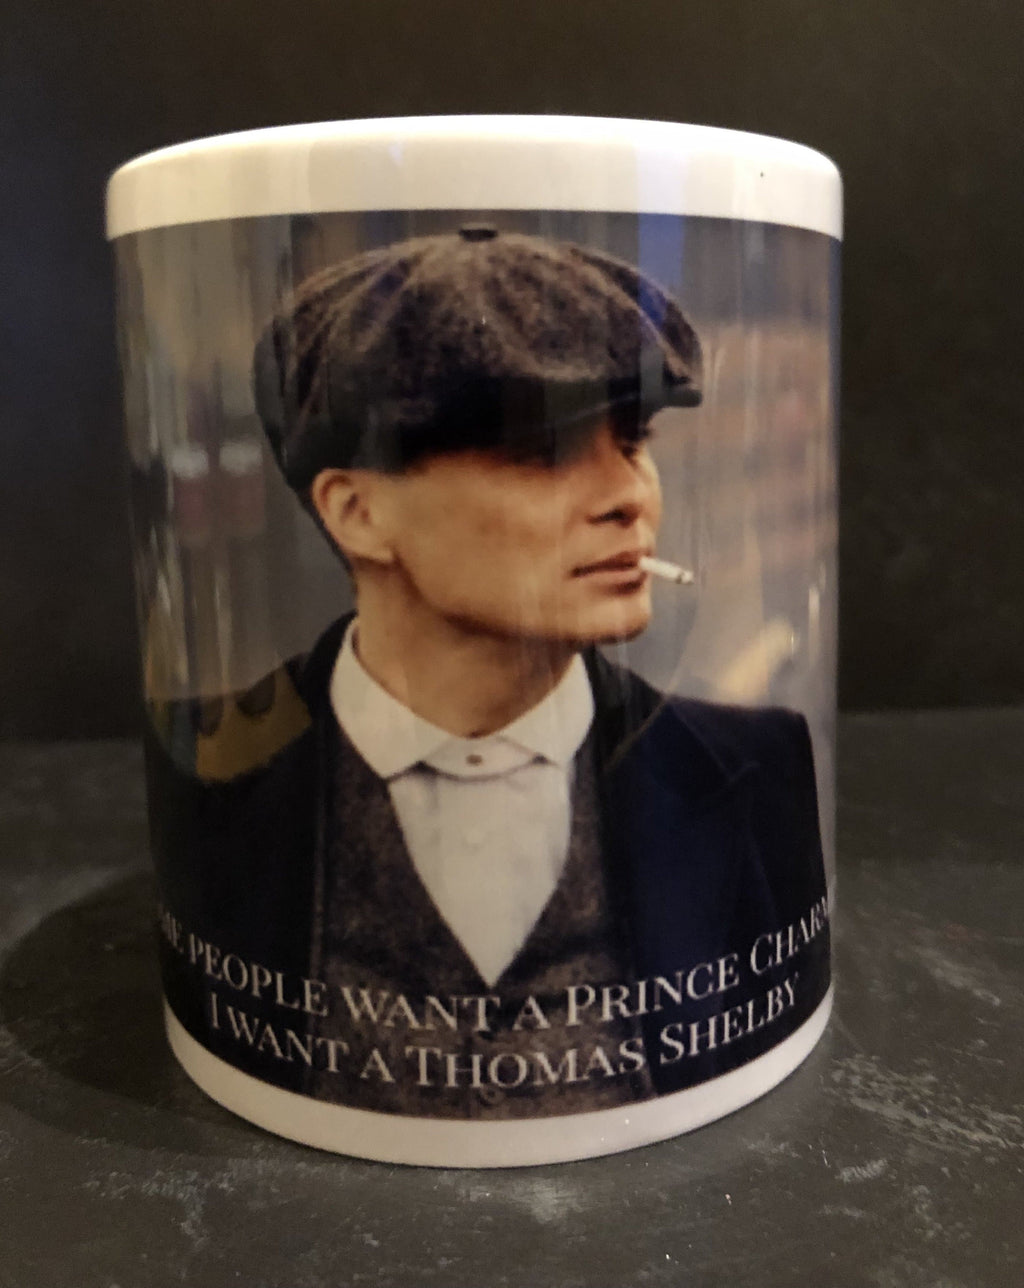 I want a Thomas Shelby mug